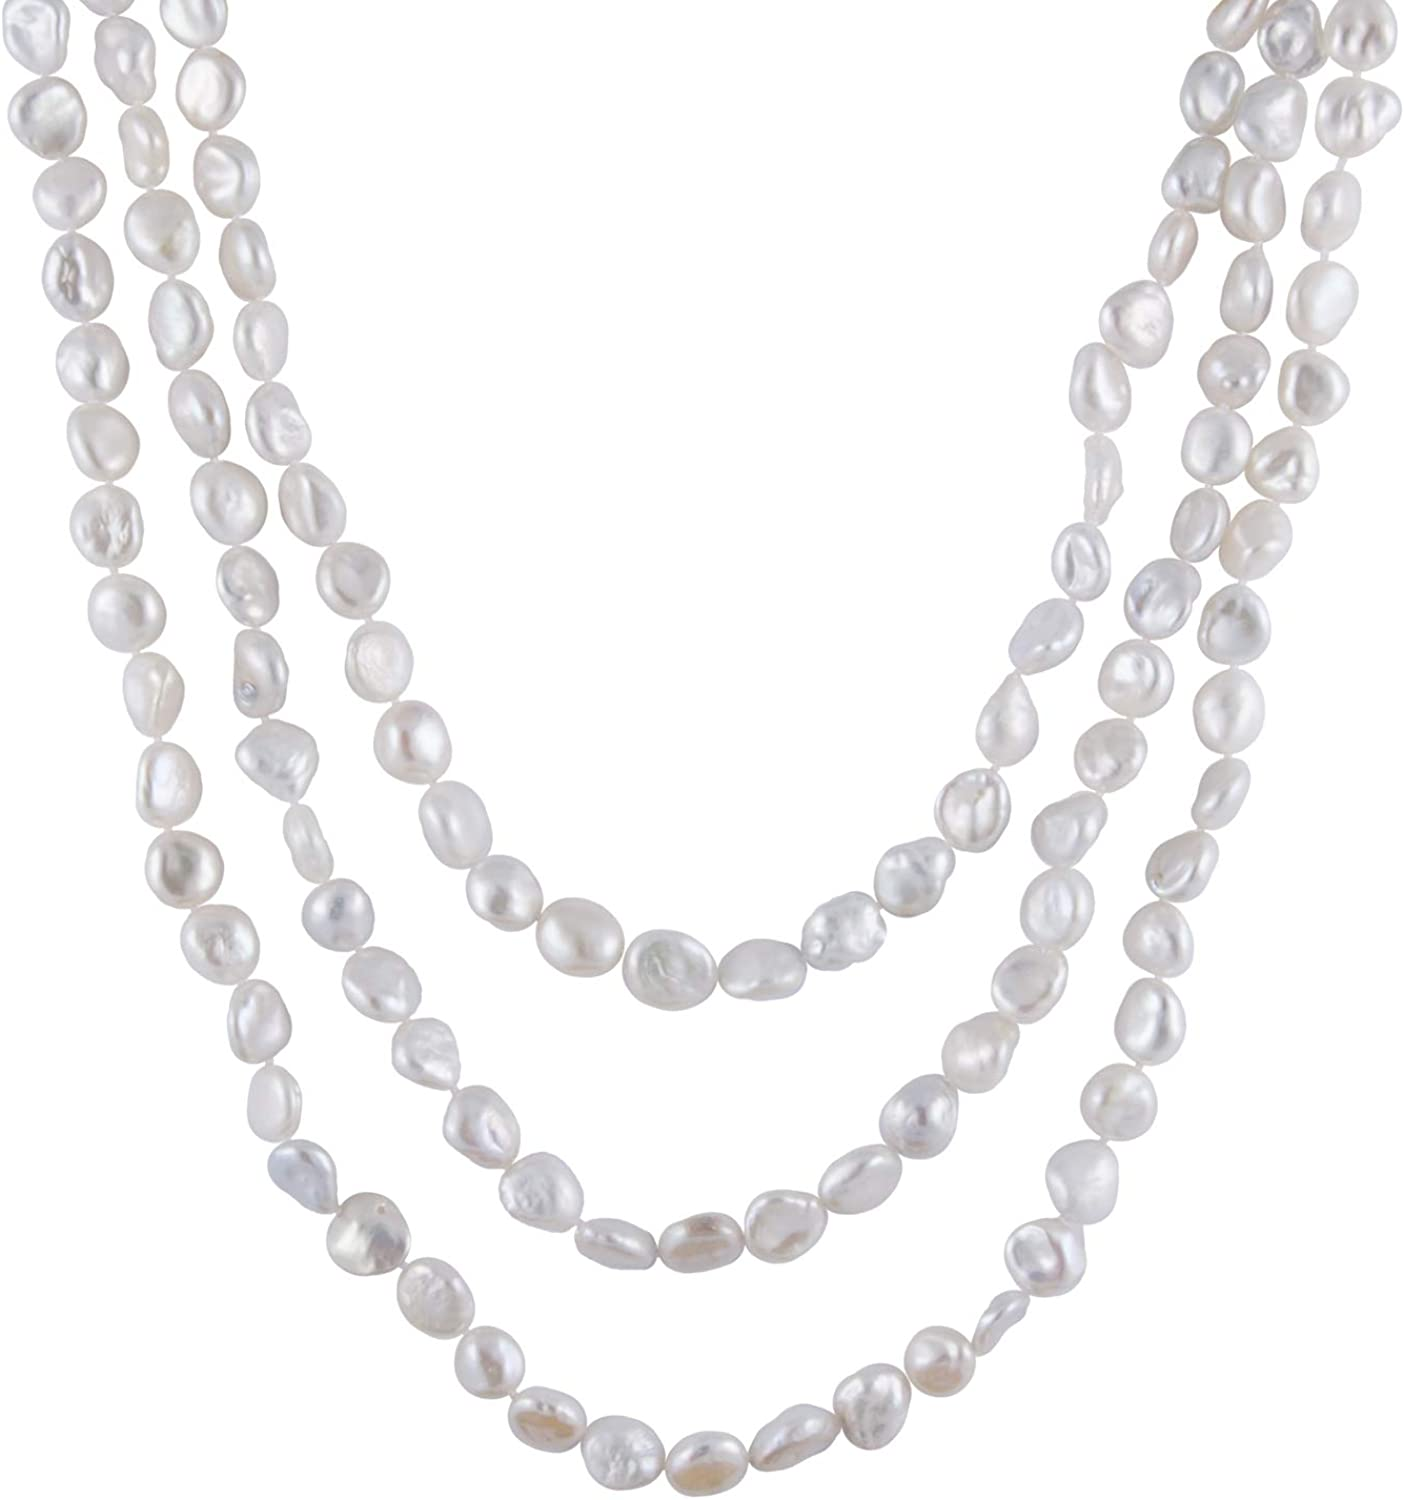 Handpicked A Quality 9-10mm Keshi Cultured Pearl Strand Endless 72